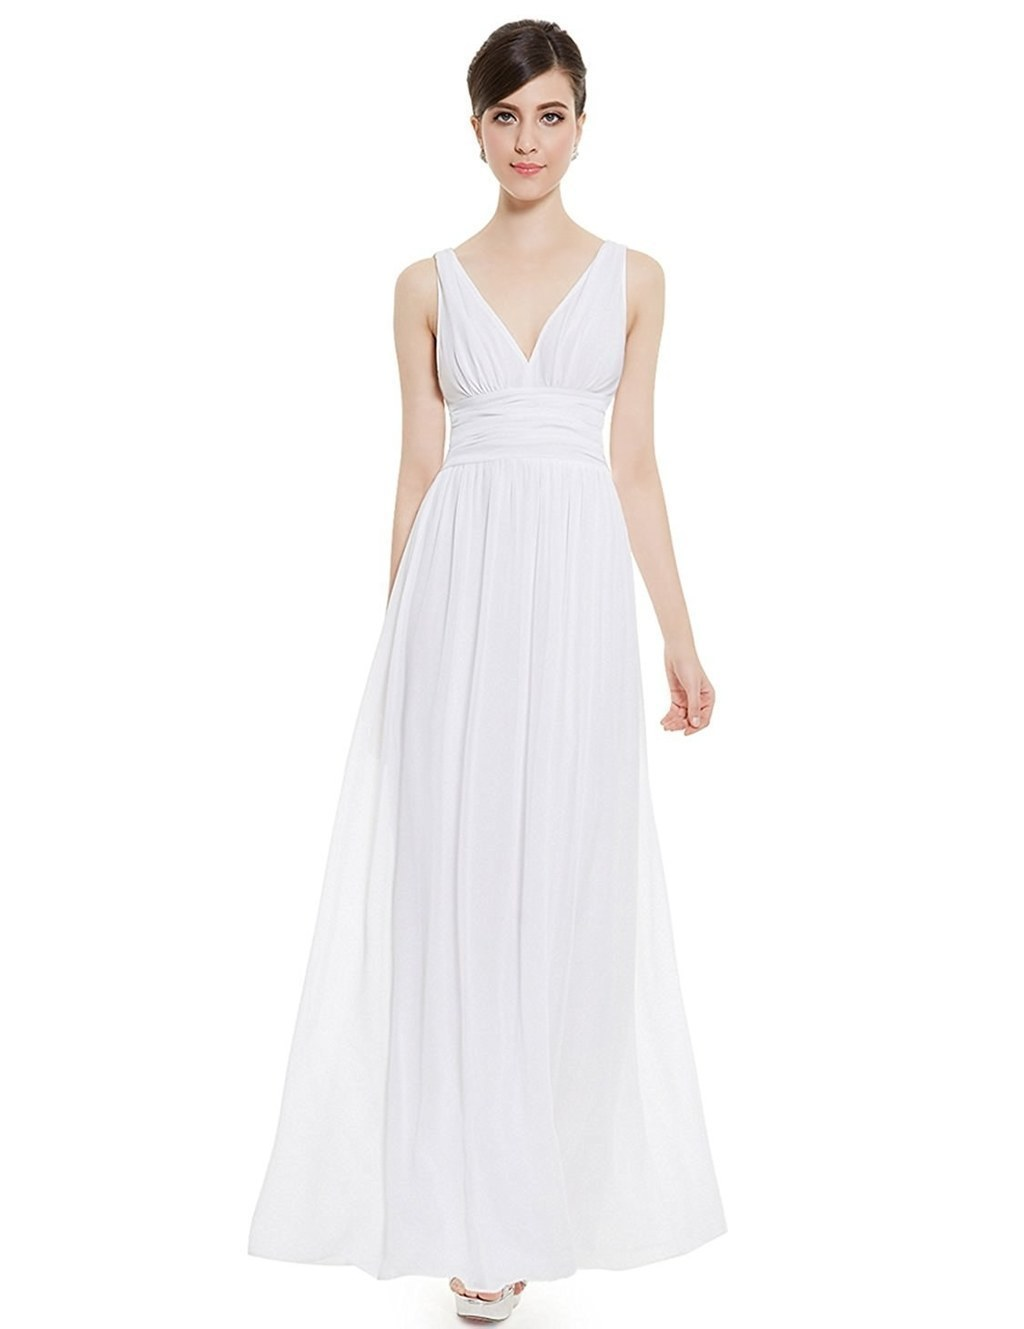 A Casual Maxi Dress That Is Perfect For Save The Date Invitations And  Engagement Photo Shoots.